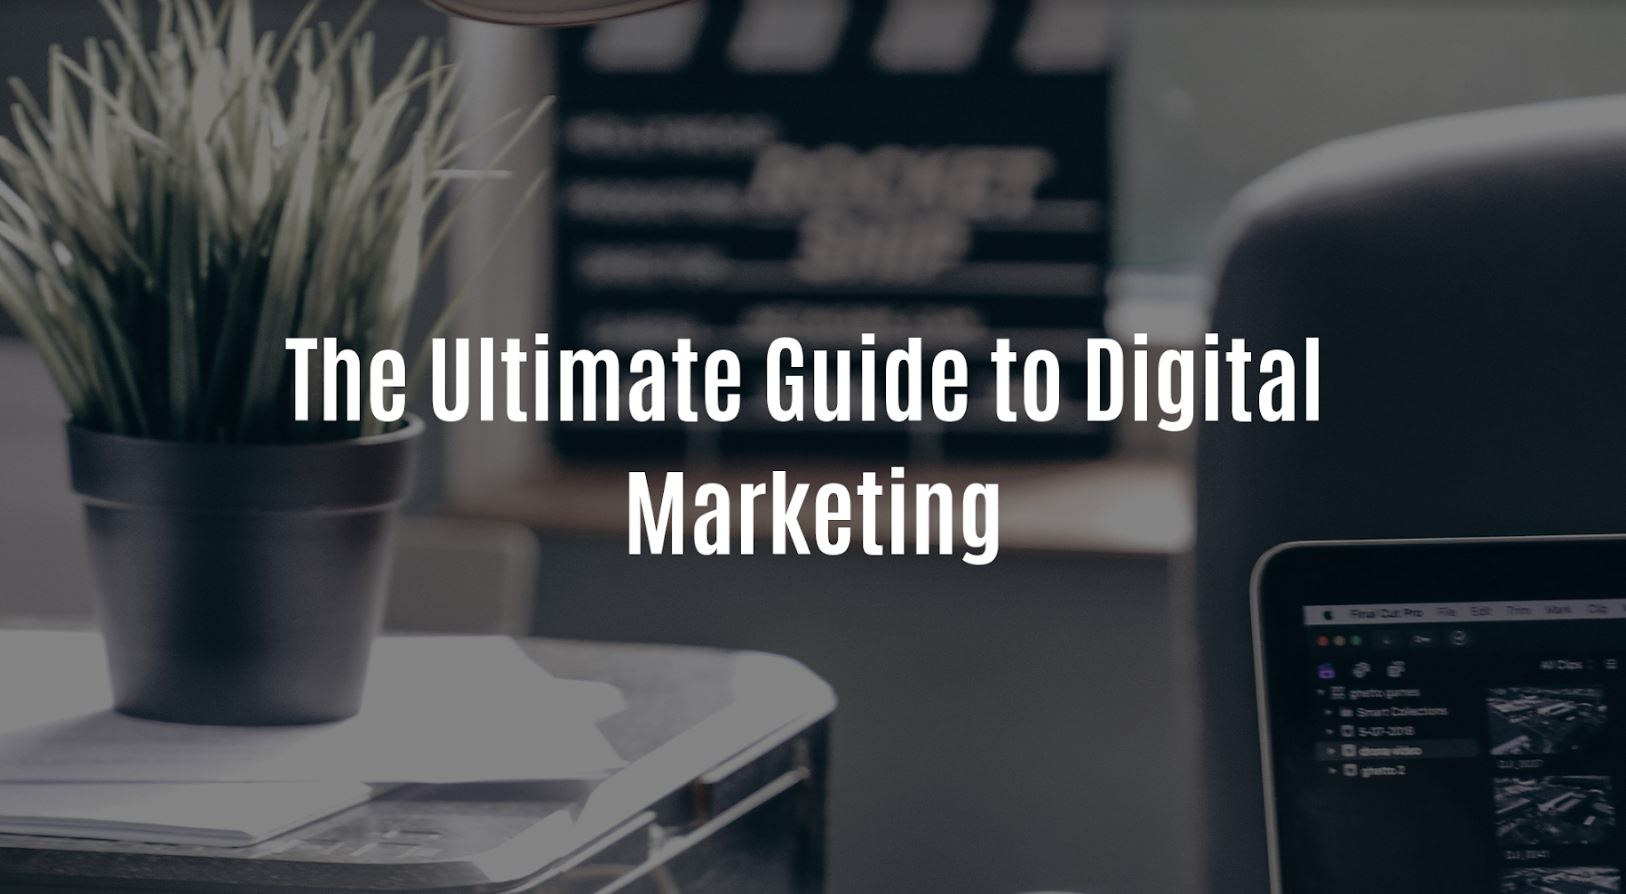 The Ultimate Guide to Digital Marketing.JPG